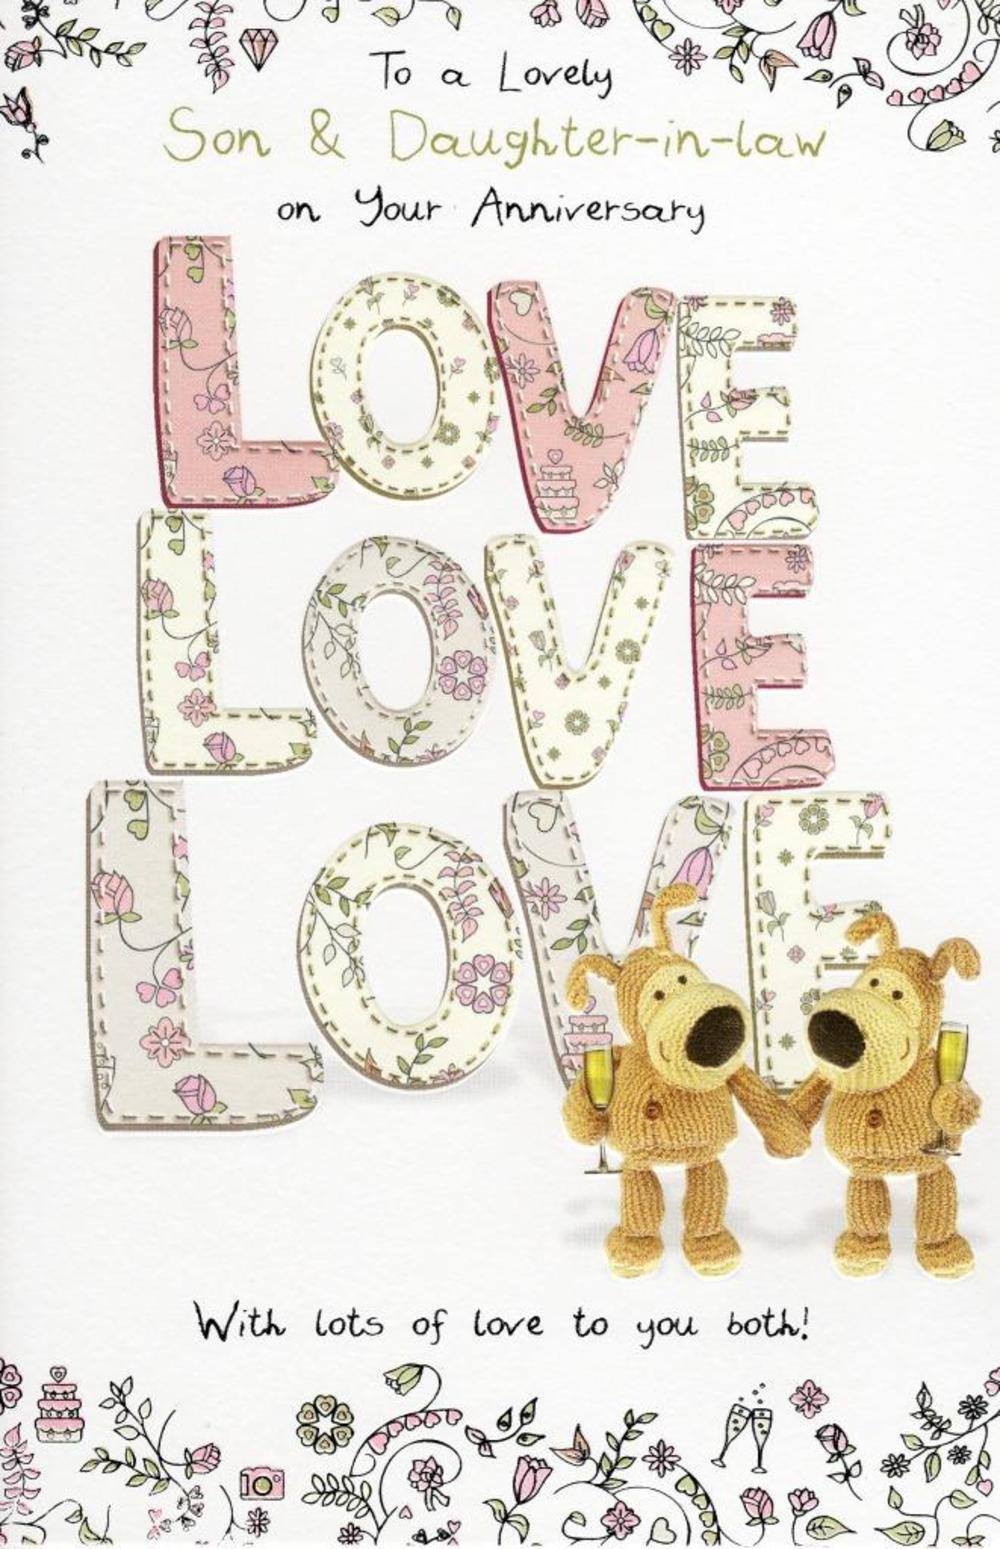 Boofle son daughter in law anniversary greeting card